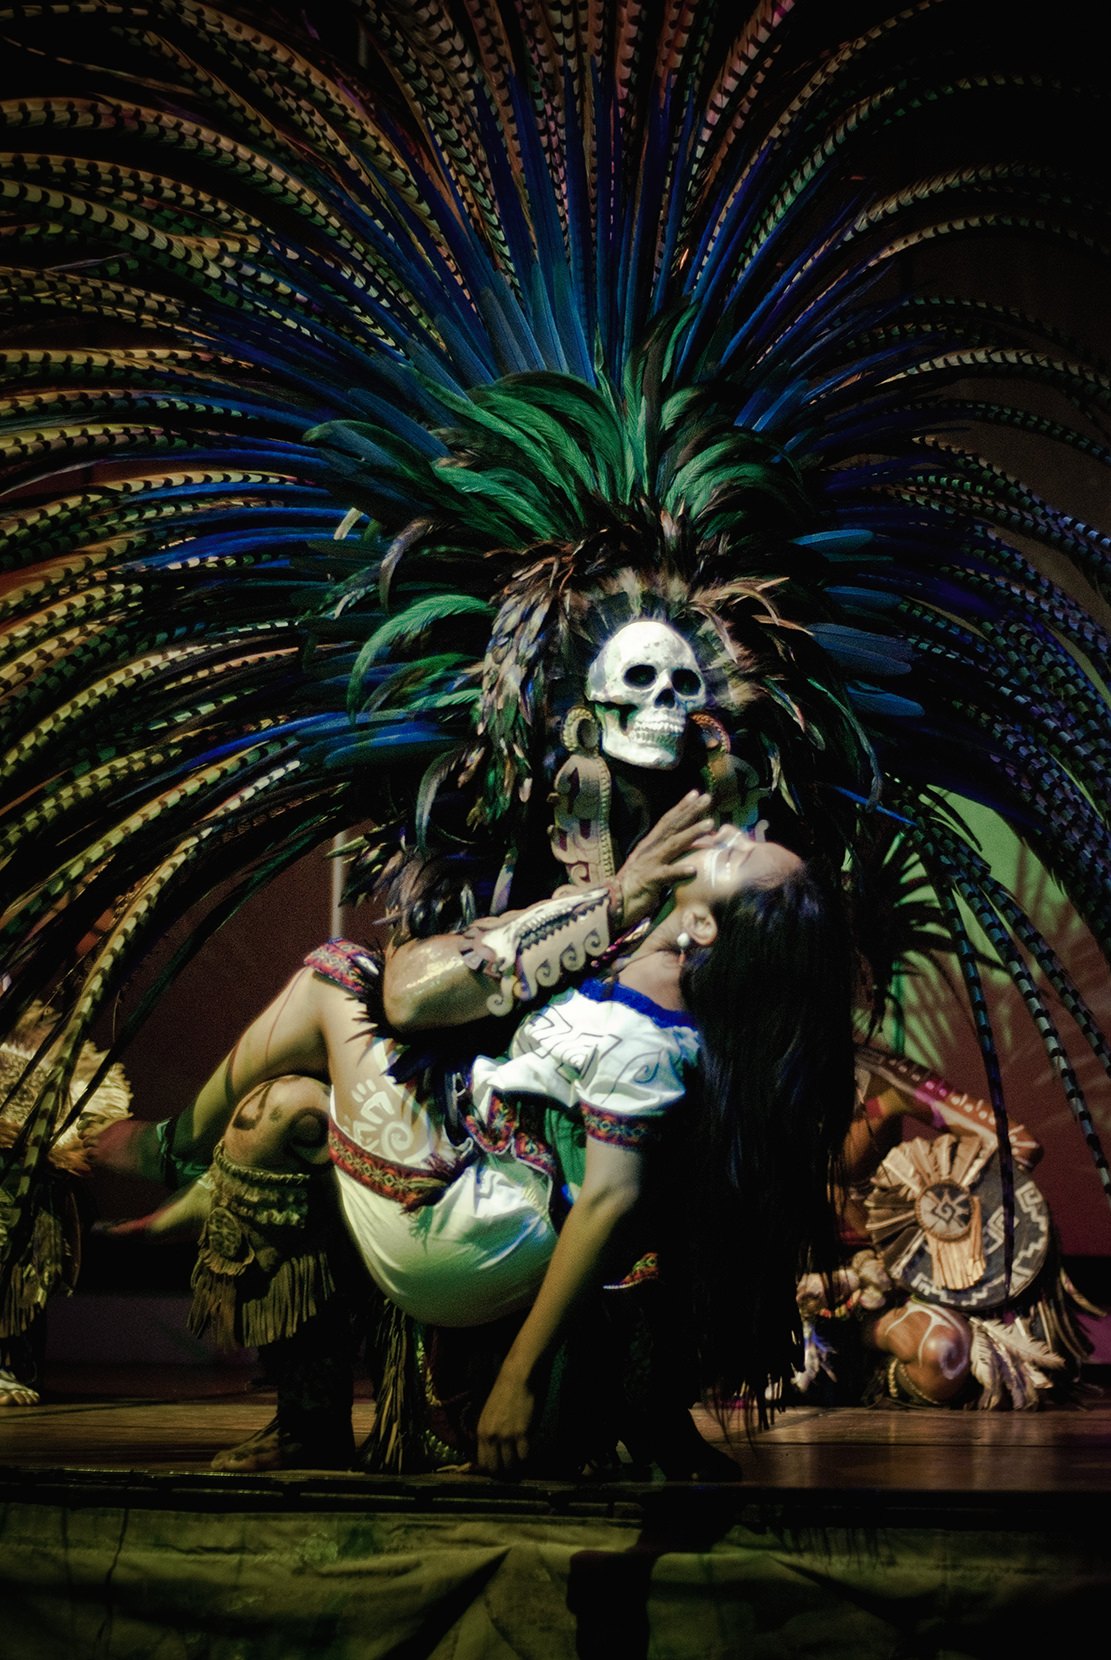 wojtek-jakubiec-photographer-montreal-mayan-mexico-documentary-Mayan-show-sacrifice-colour.jpg